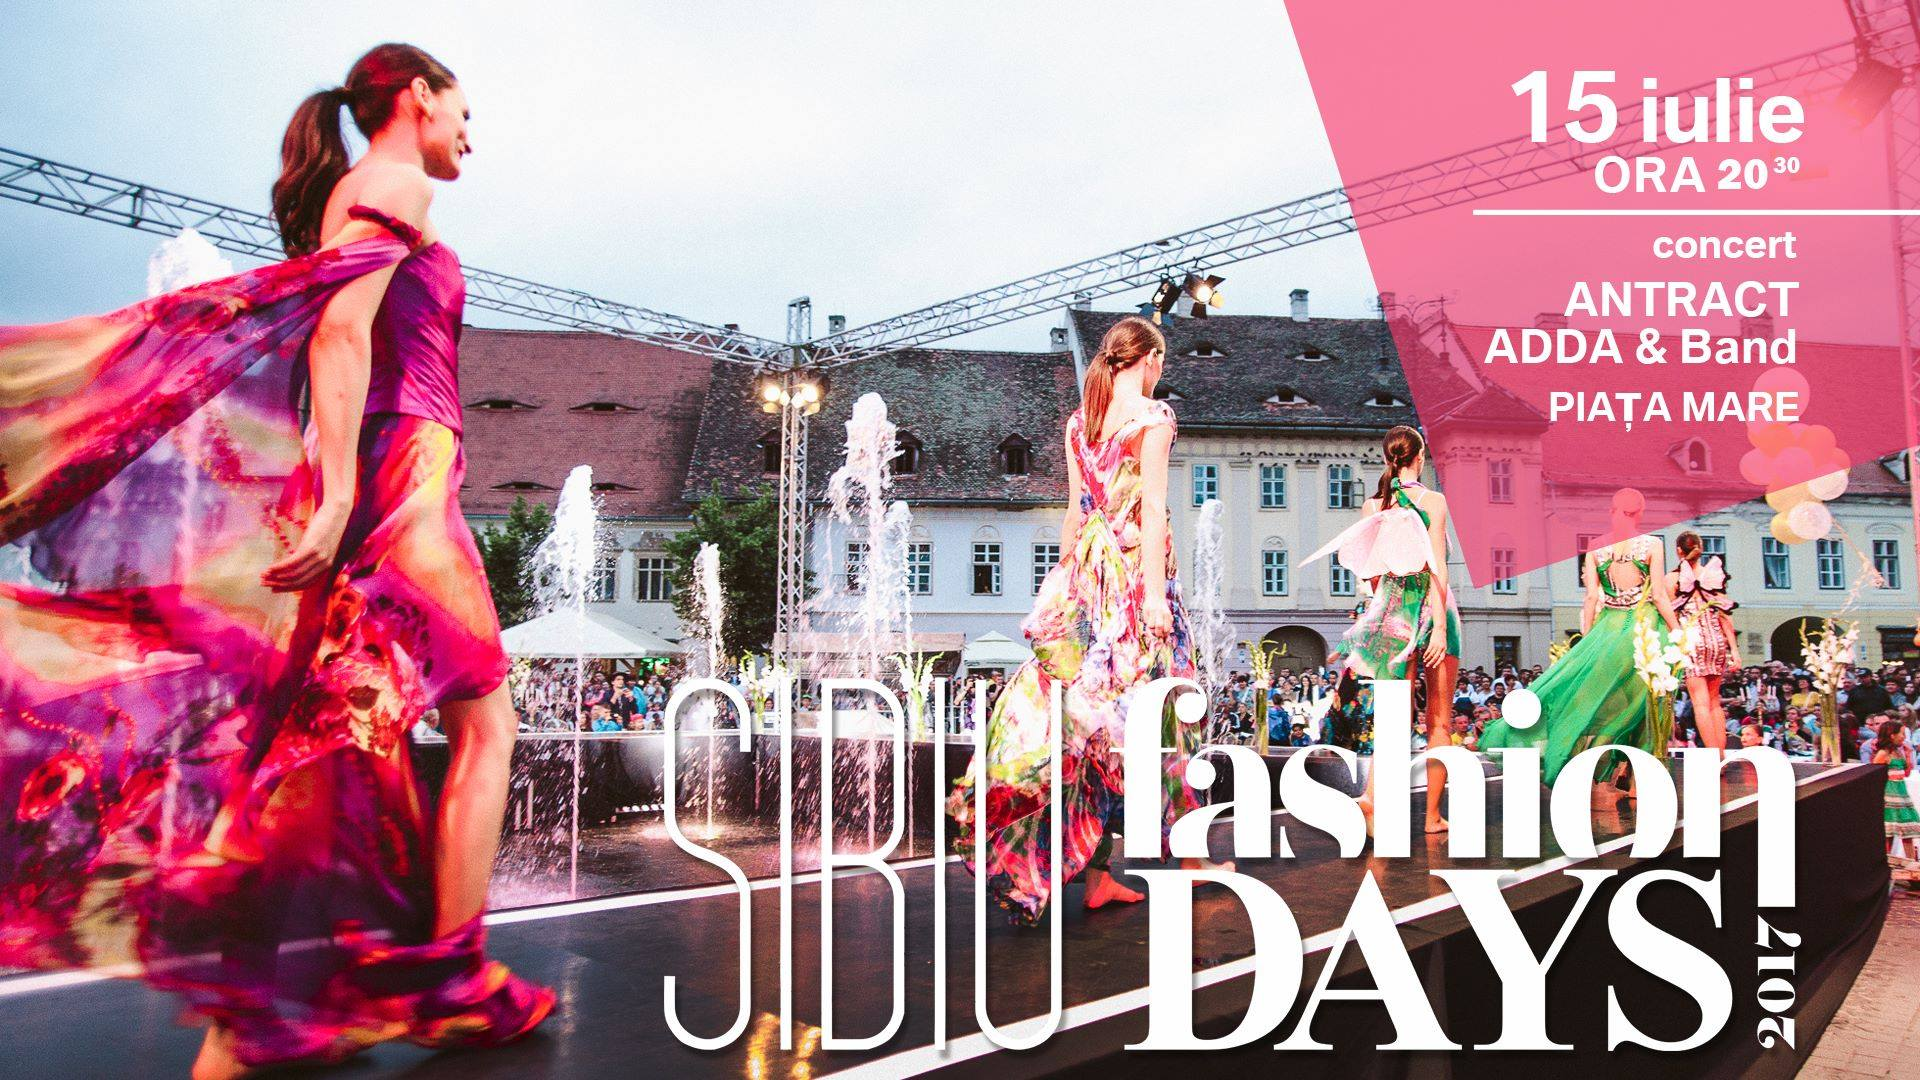 Concert Antract la Sibiu Fashion Days